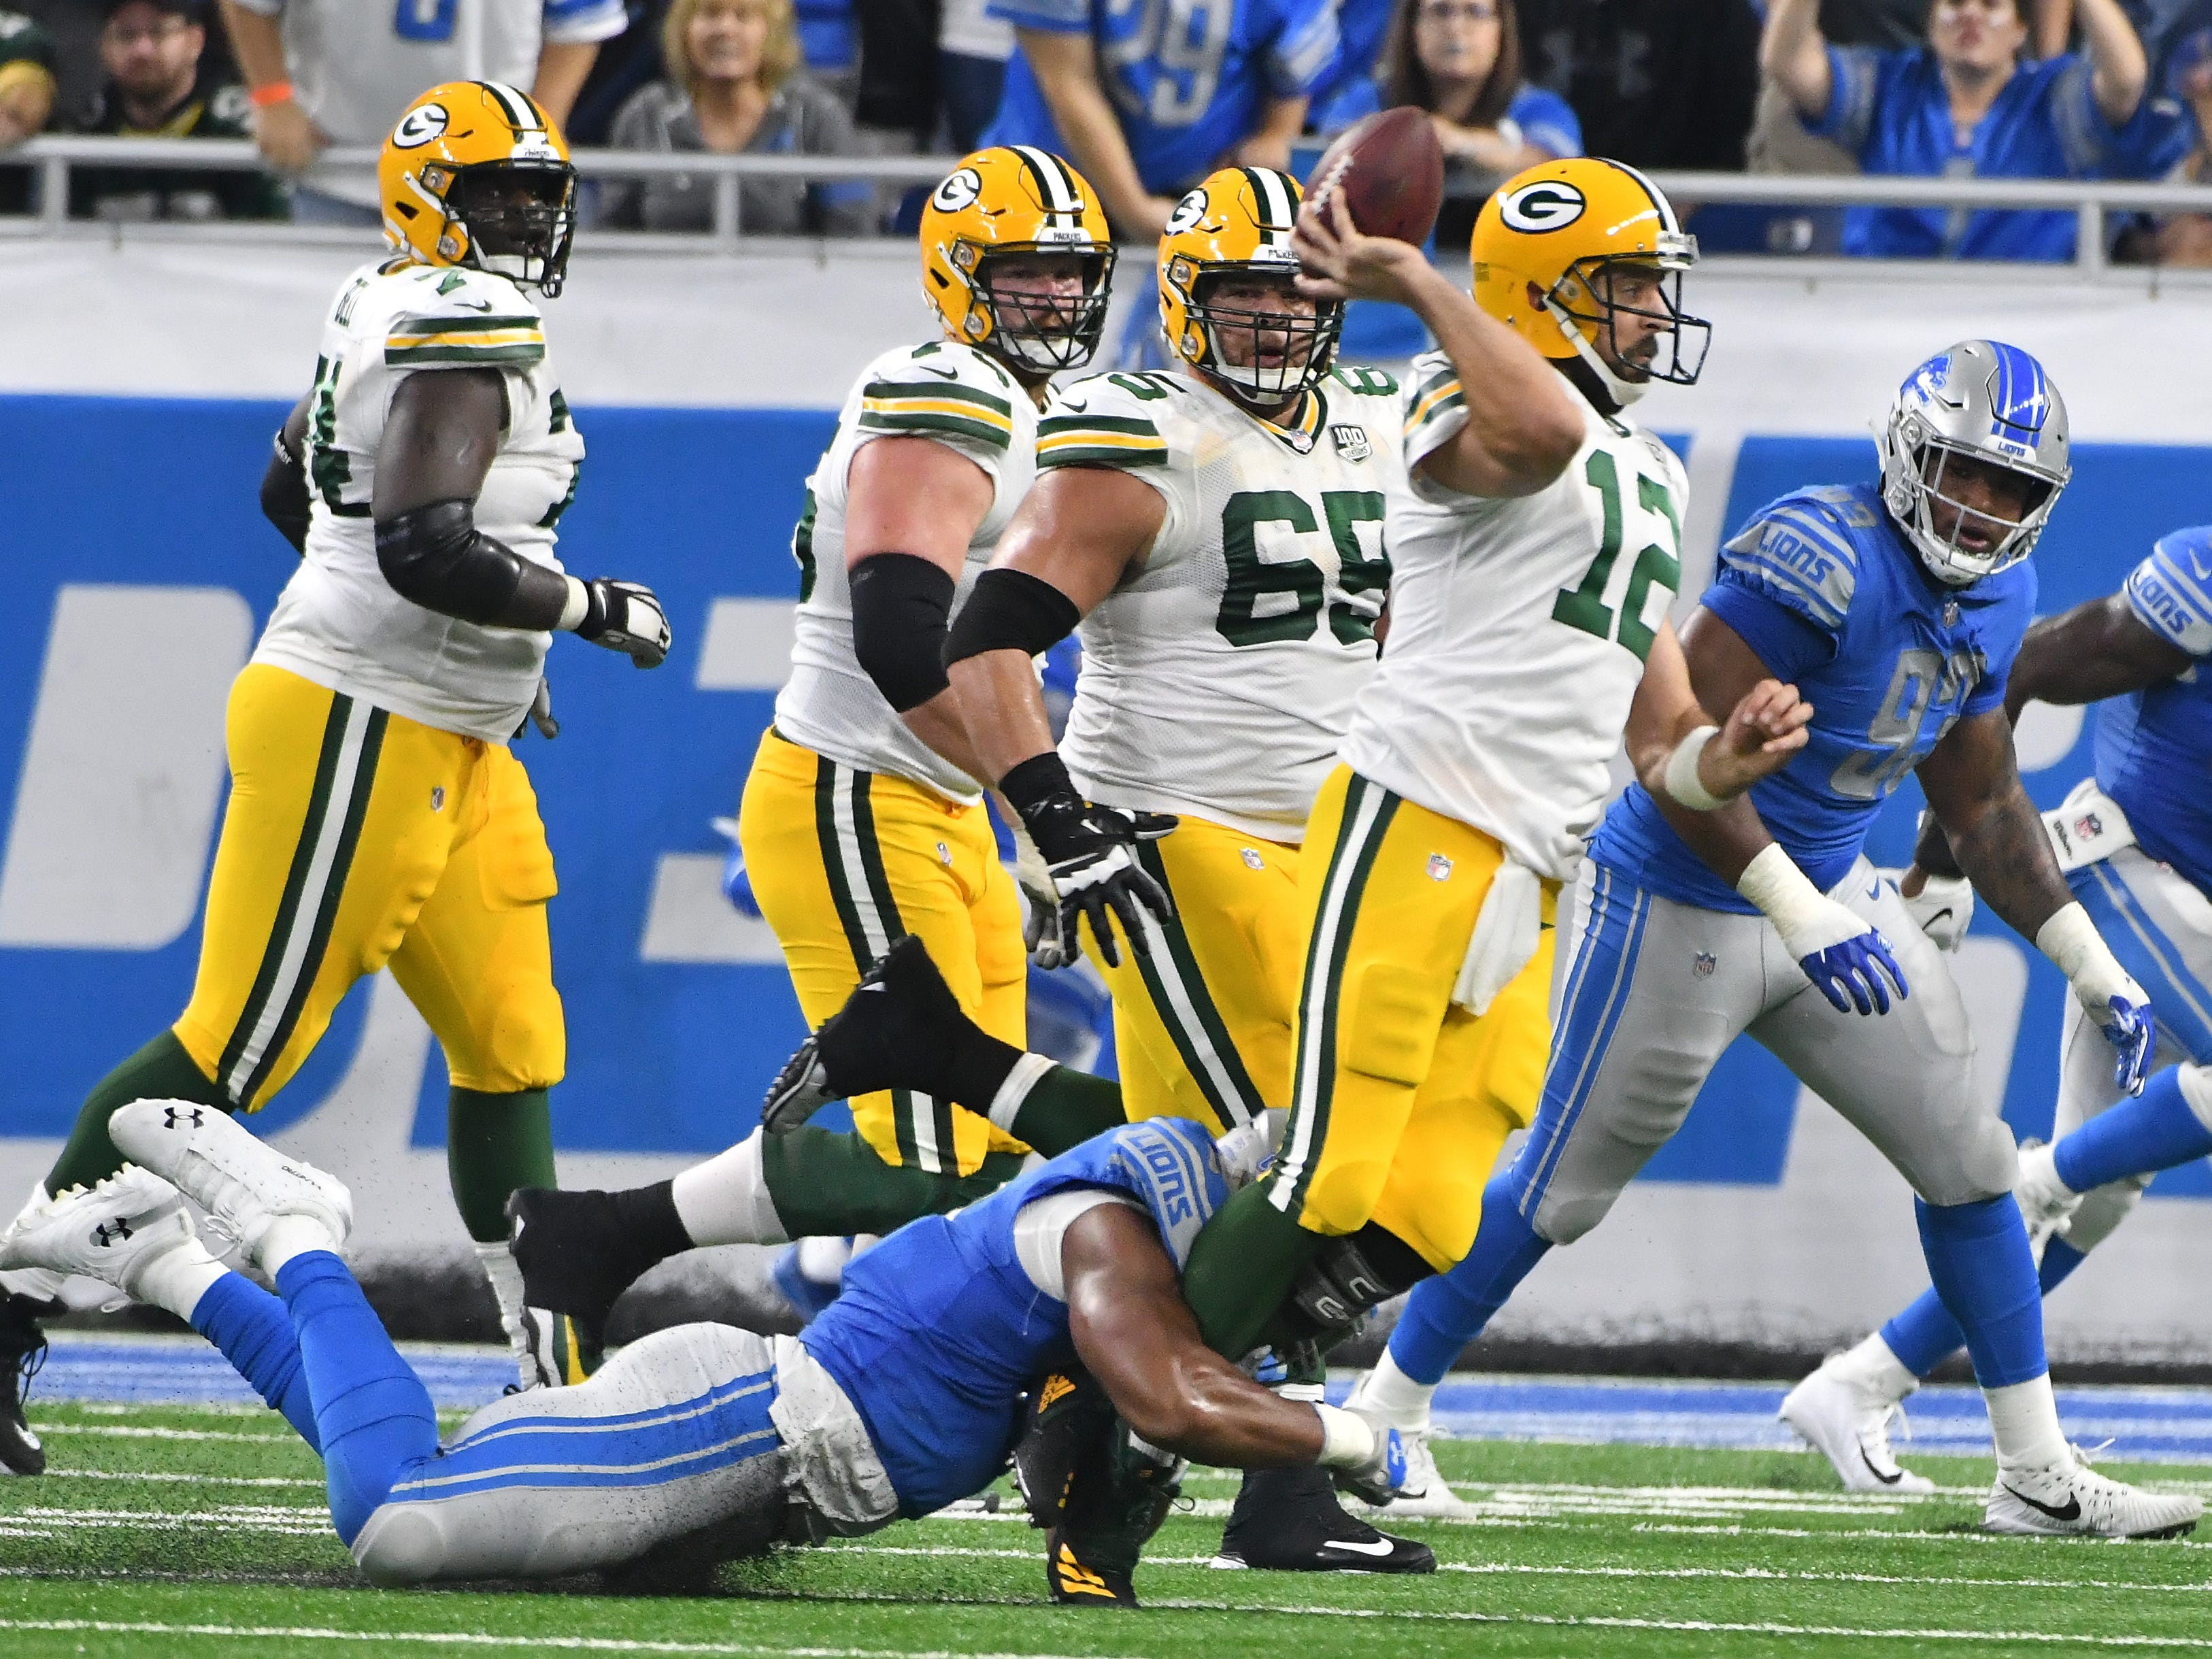 Lions' Romeo Okwara pressures Packers quarterback Aaron Rodgers to throw the ball away in the second quarter.